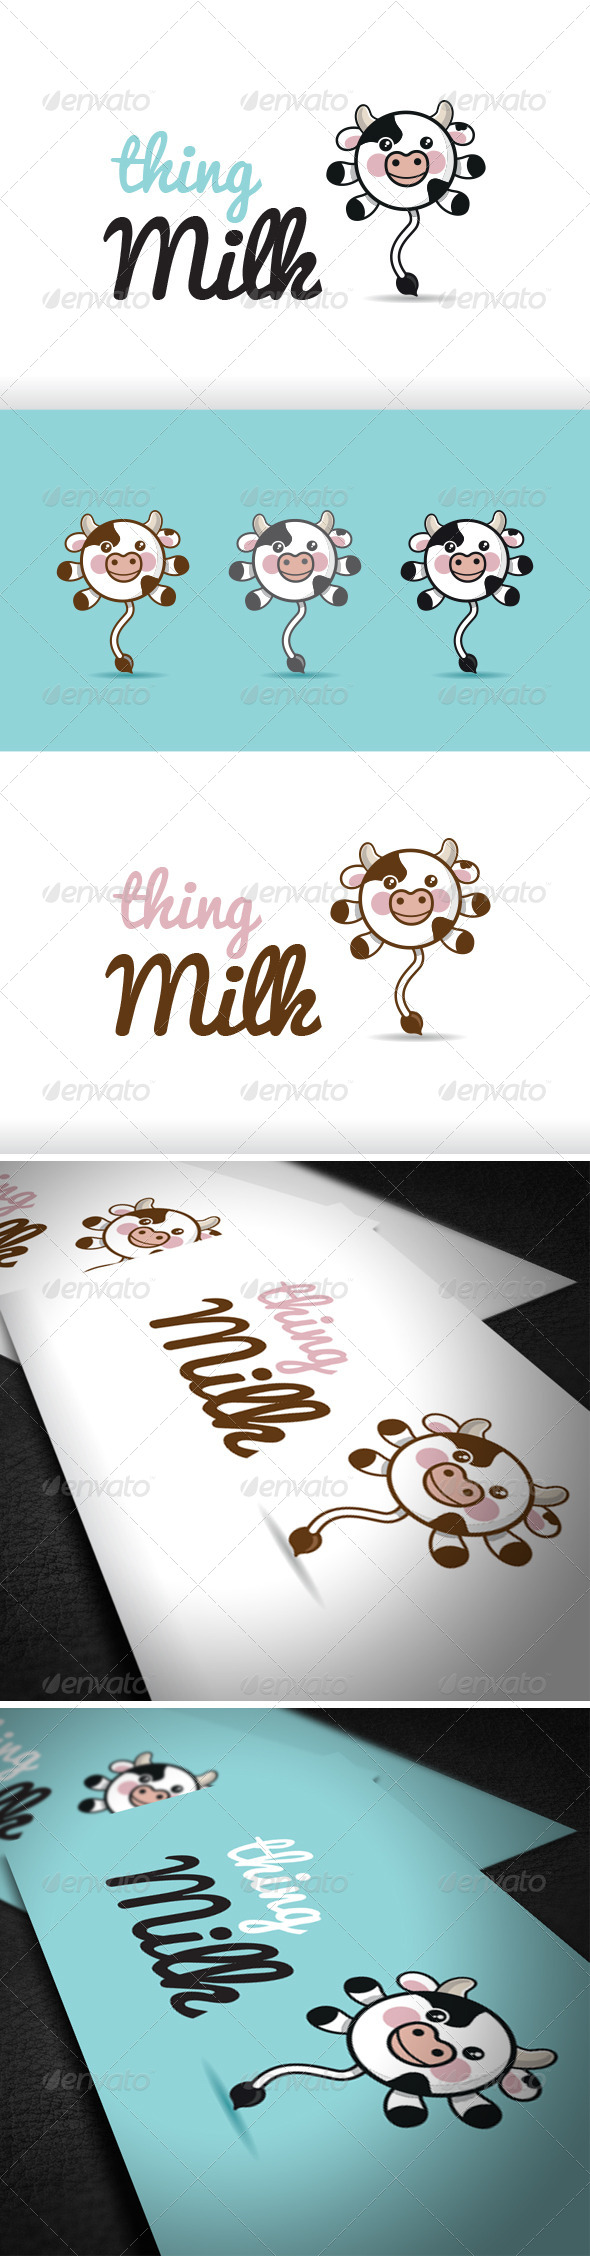 Thing Milk Logo Template - Vector Abstract